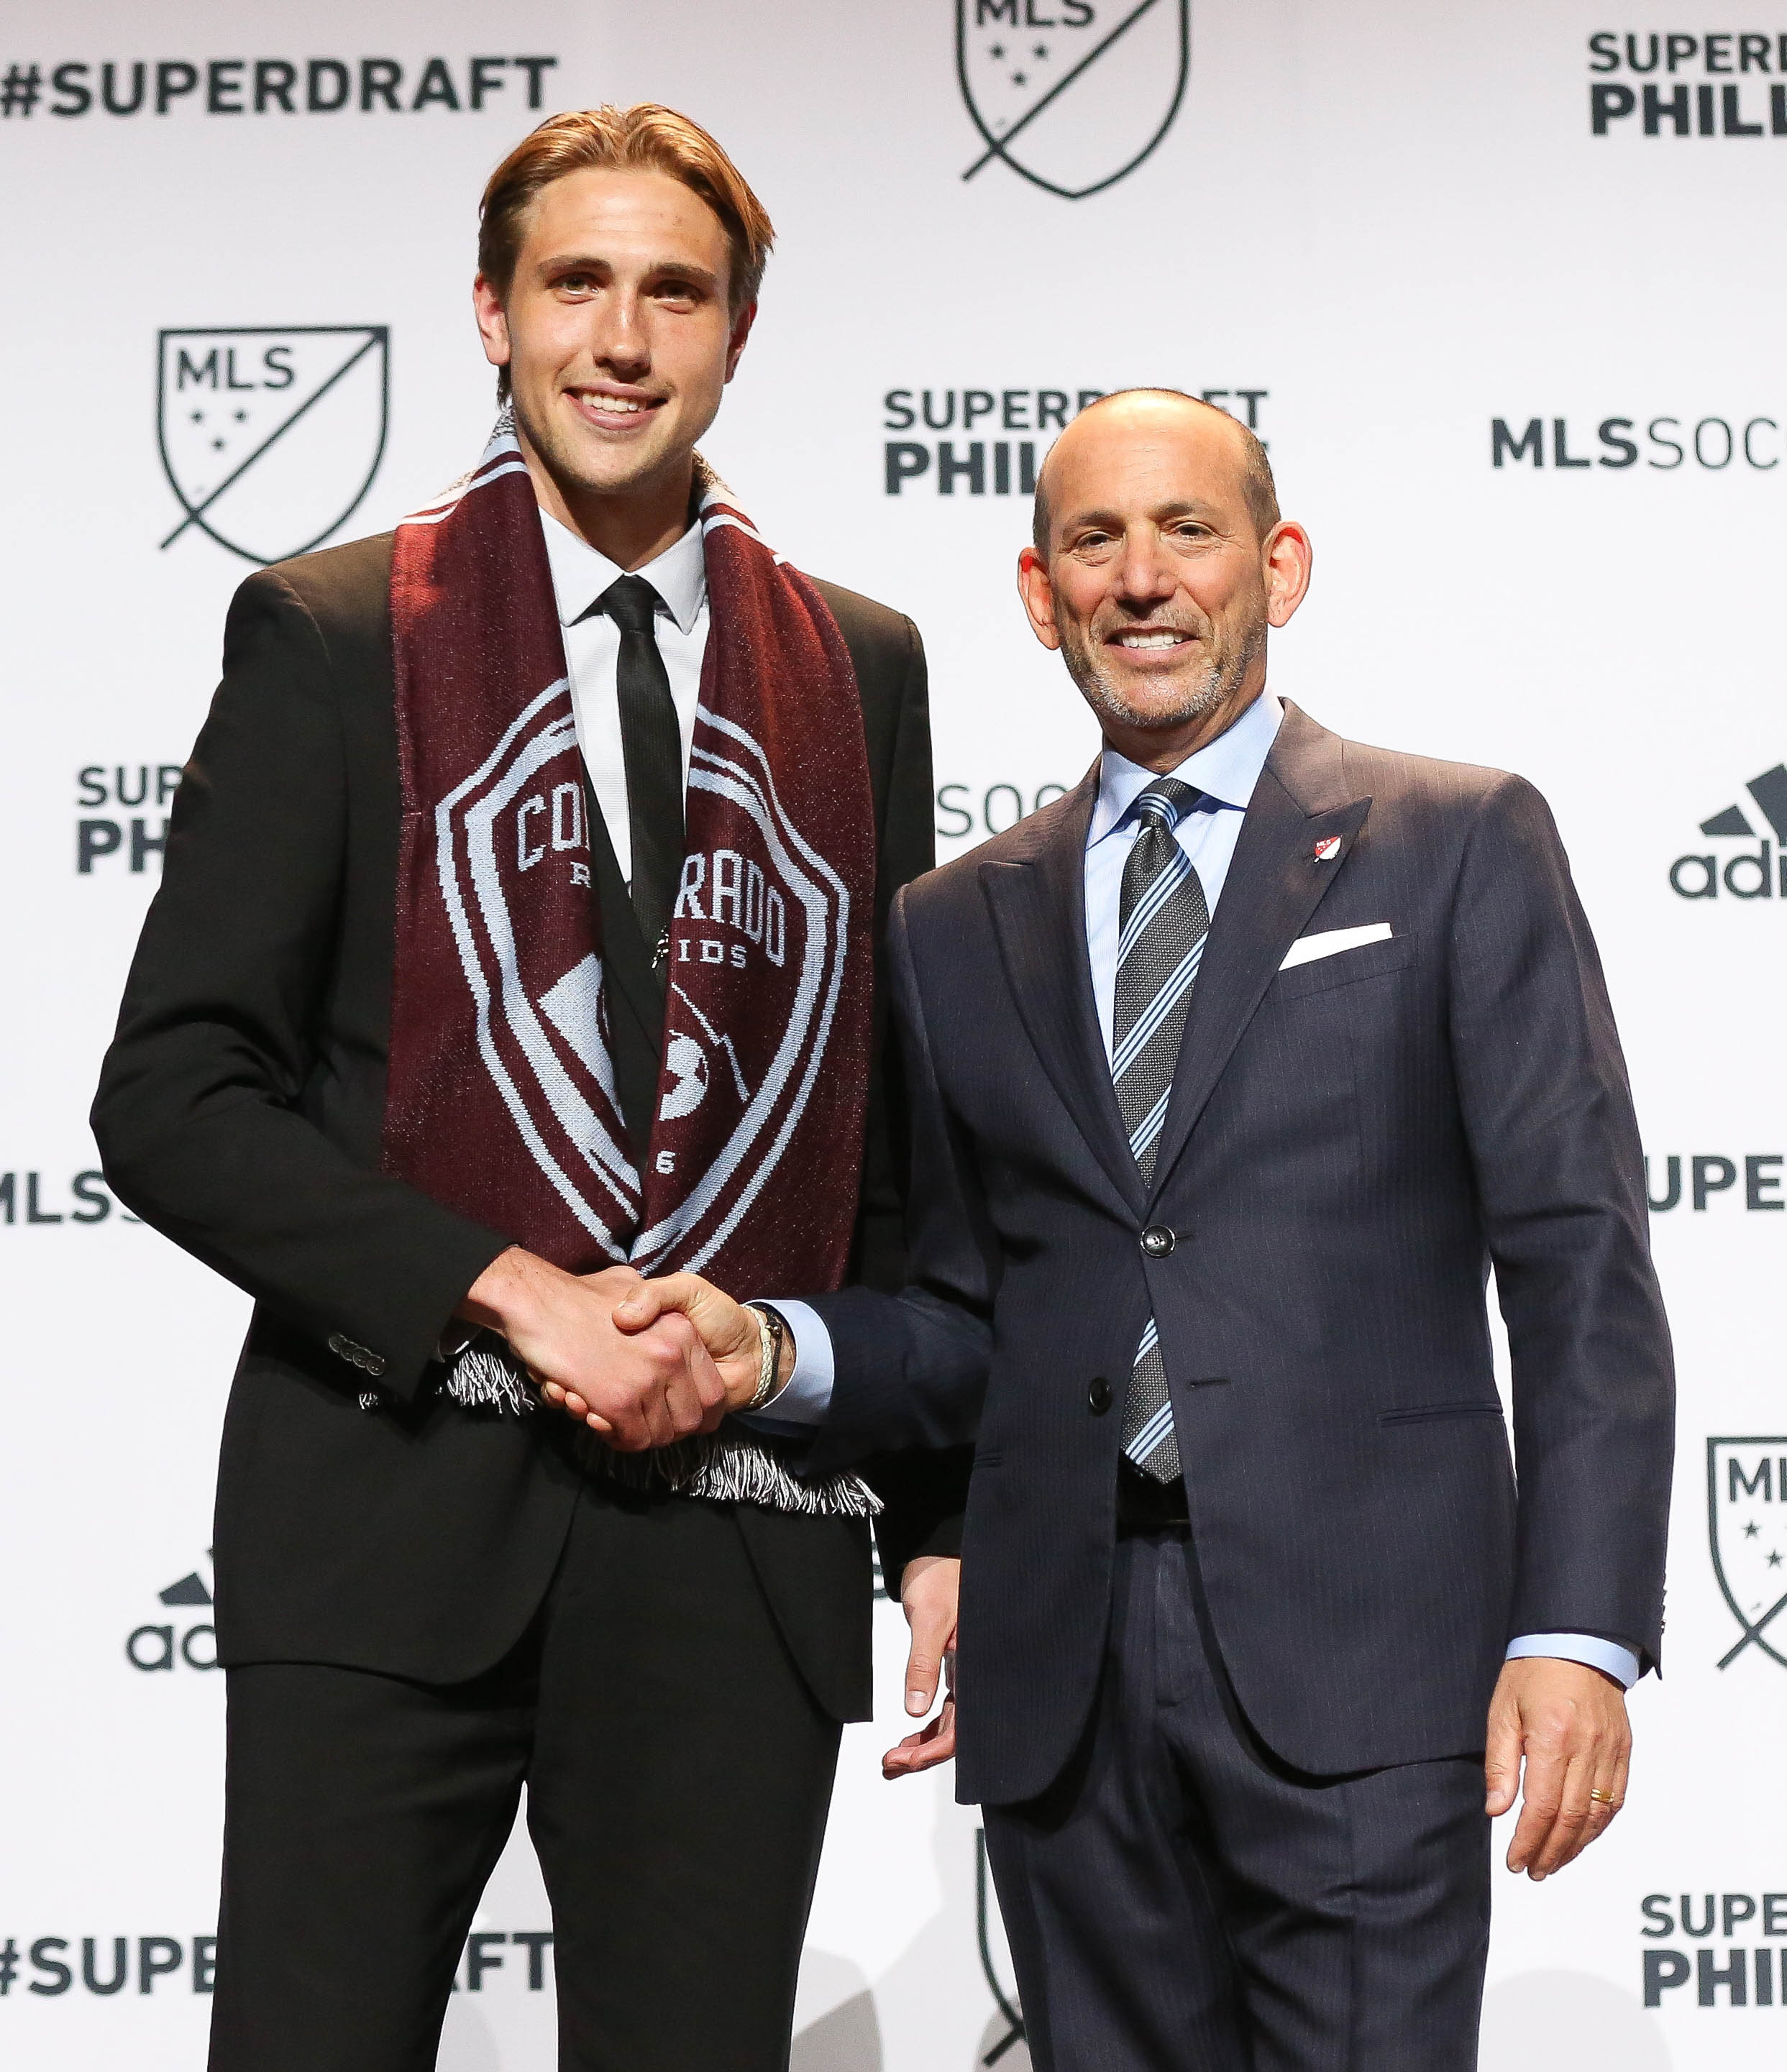 Sjoberg was the first pick for the Rapids in the 2015 MLS SuperDraft